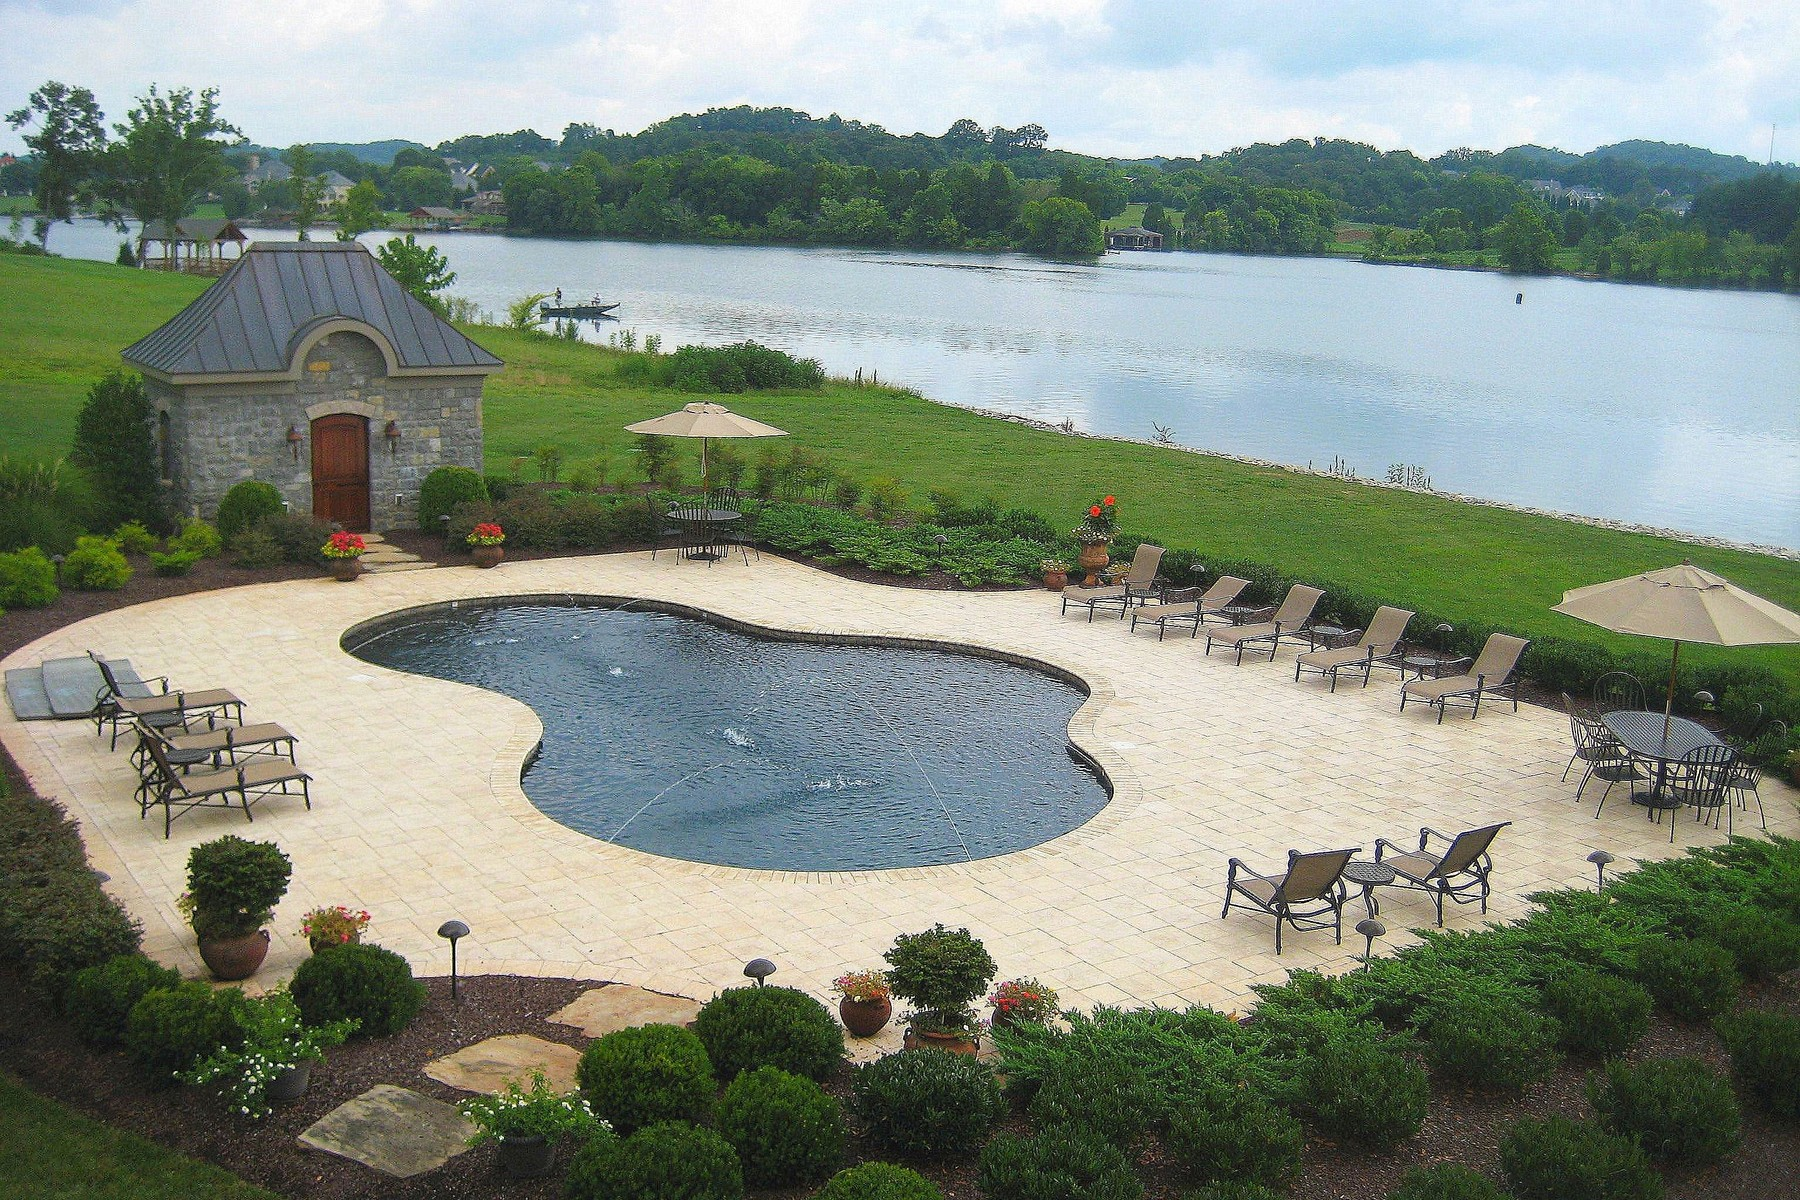 Additional photo for property listing at 3727 Edgewater Way, Louisville, TN 37777 3727  Edgewater Way 26 Louisville, Tennessee 37777 United States